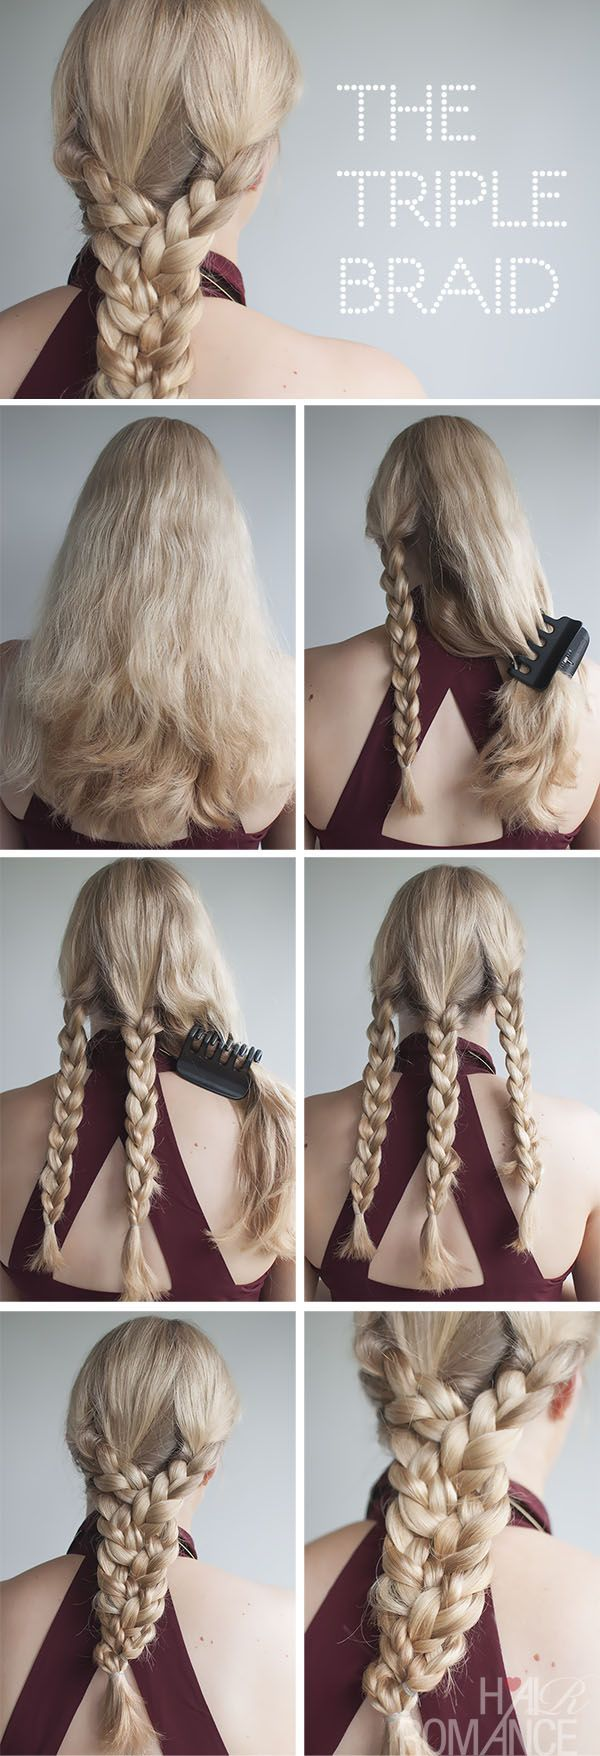 Pictures how to style little girlsu hair cute long hairstyles